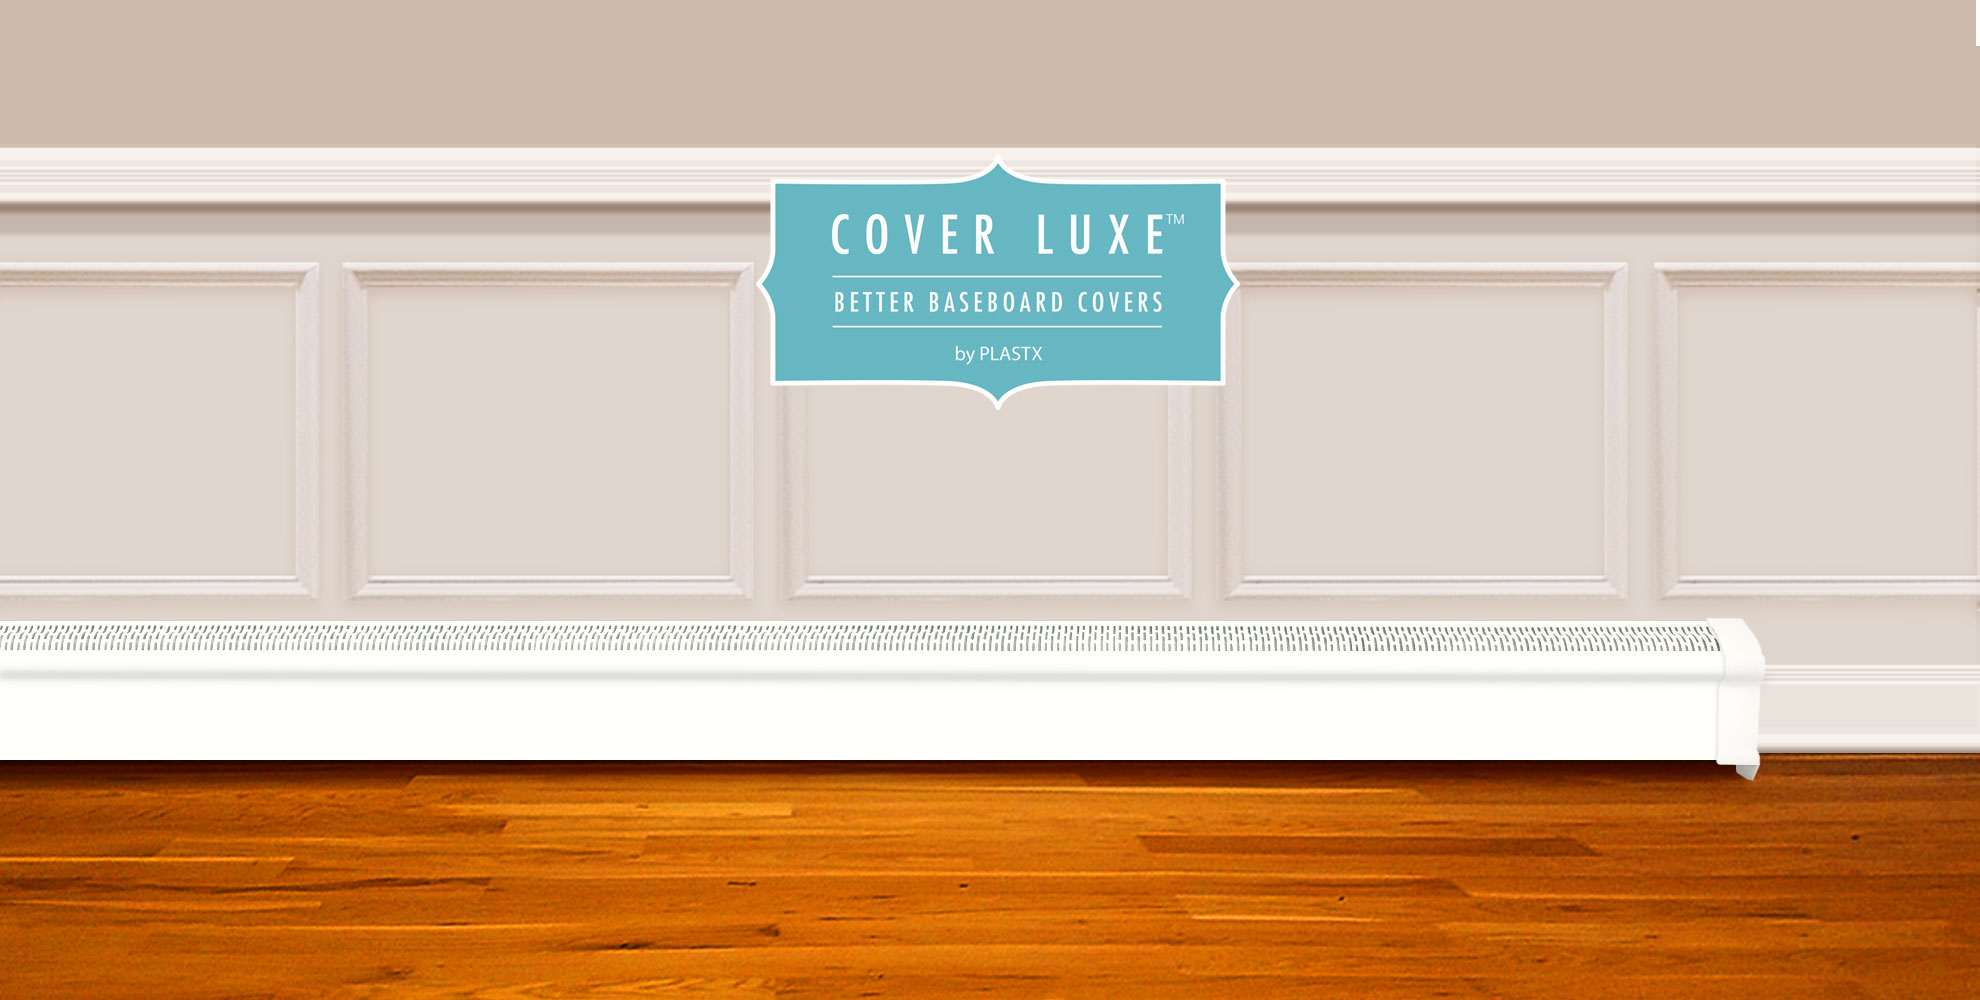 Cover Luxe